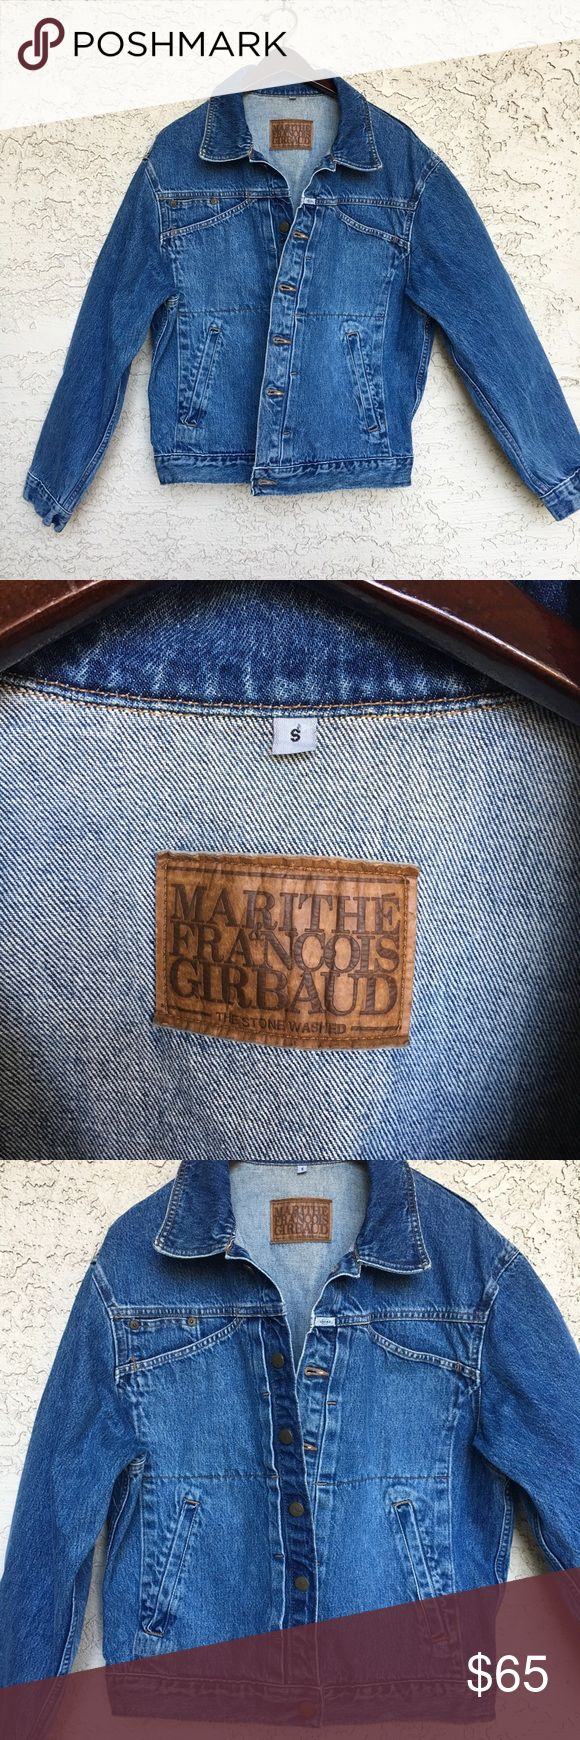 Marithe Francois Girbaud Denim Jacket In excellent used condition.  No stains or rips.  Perfect to pair with a hoodie or wear alone. Marithe Francois Girbaud Jackets & Coats